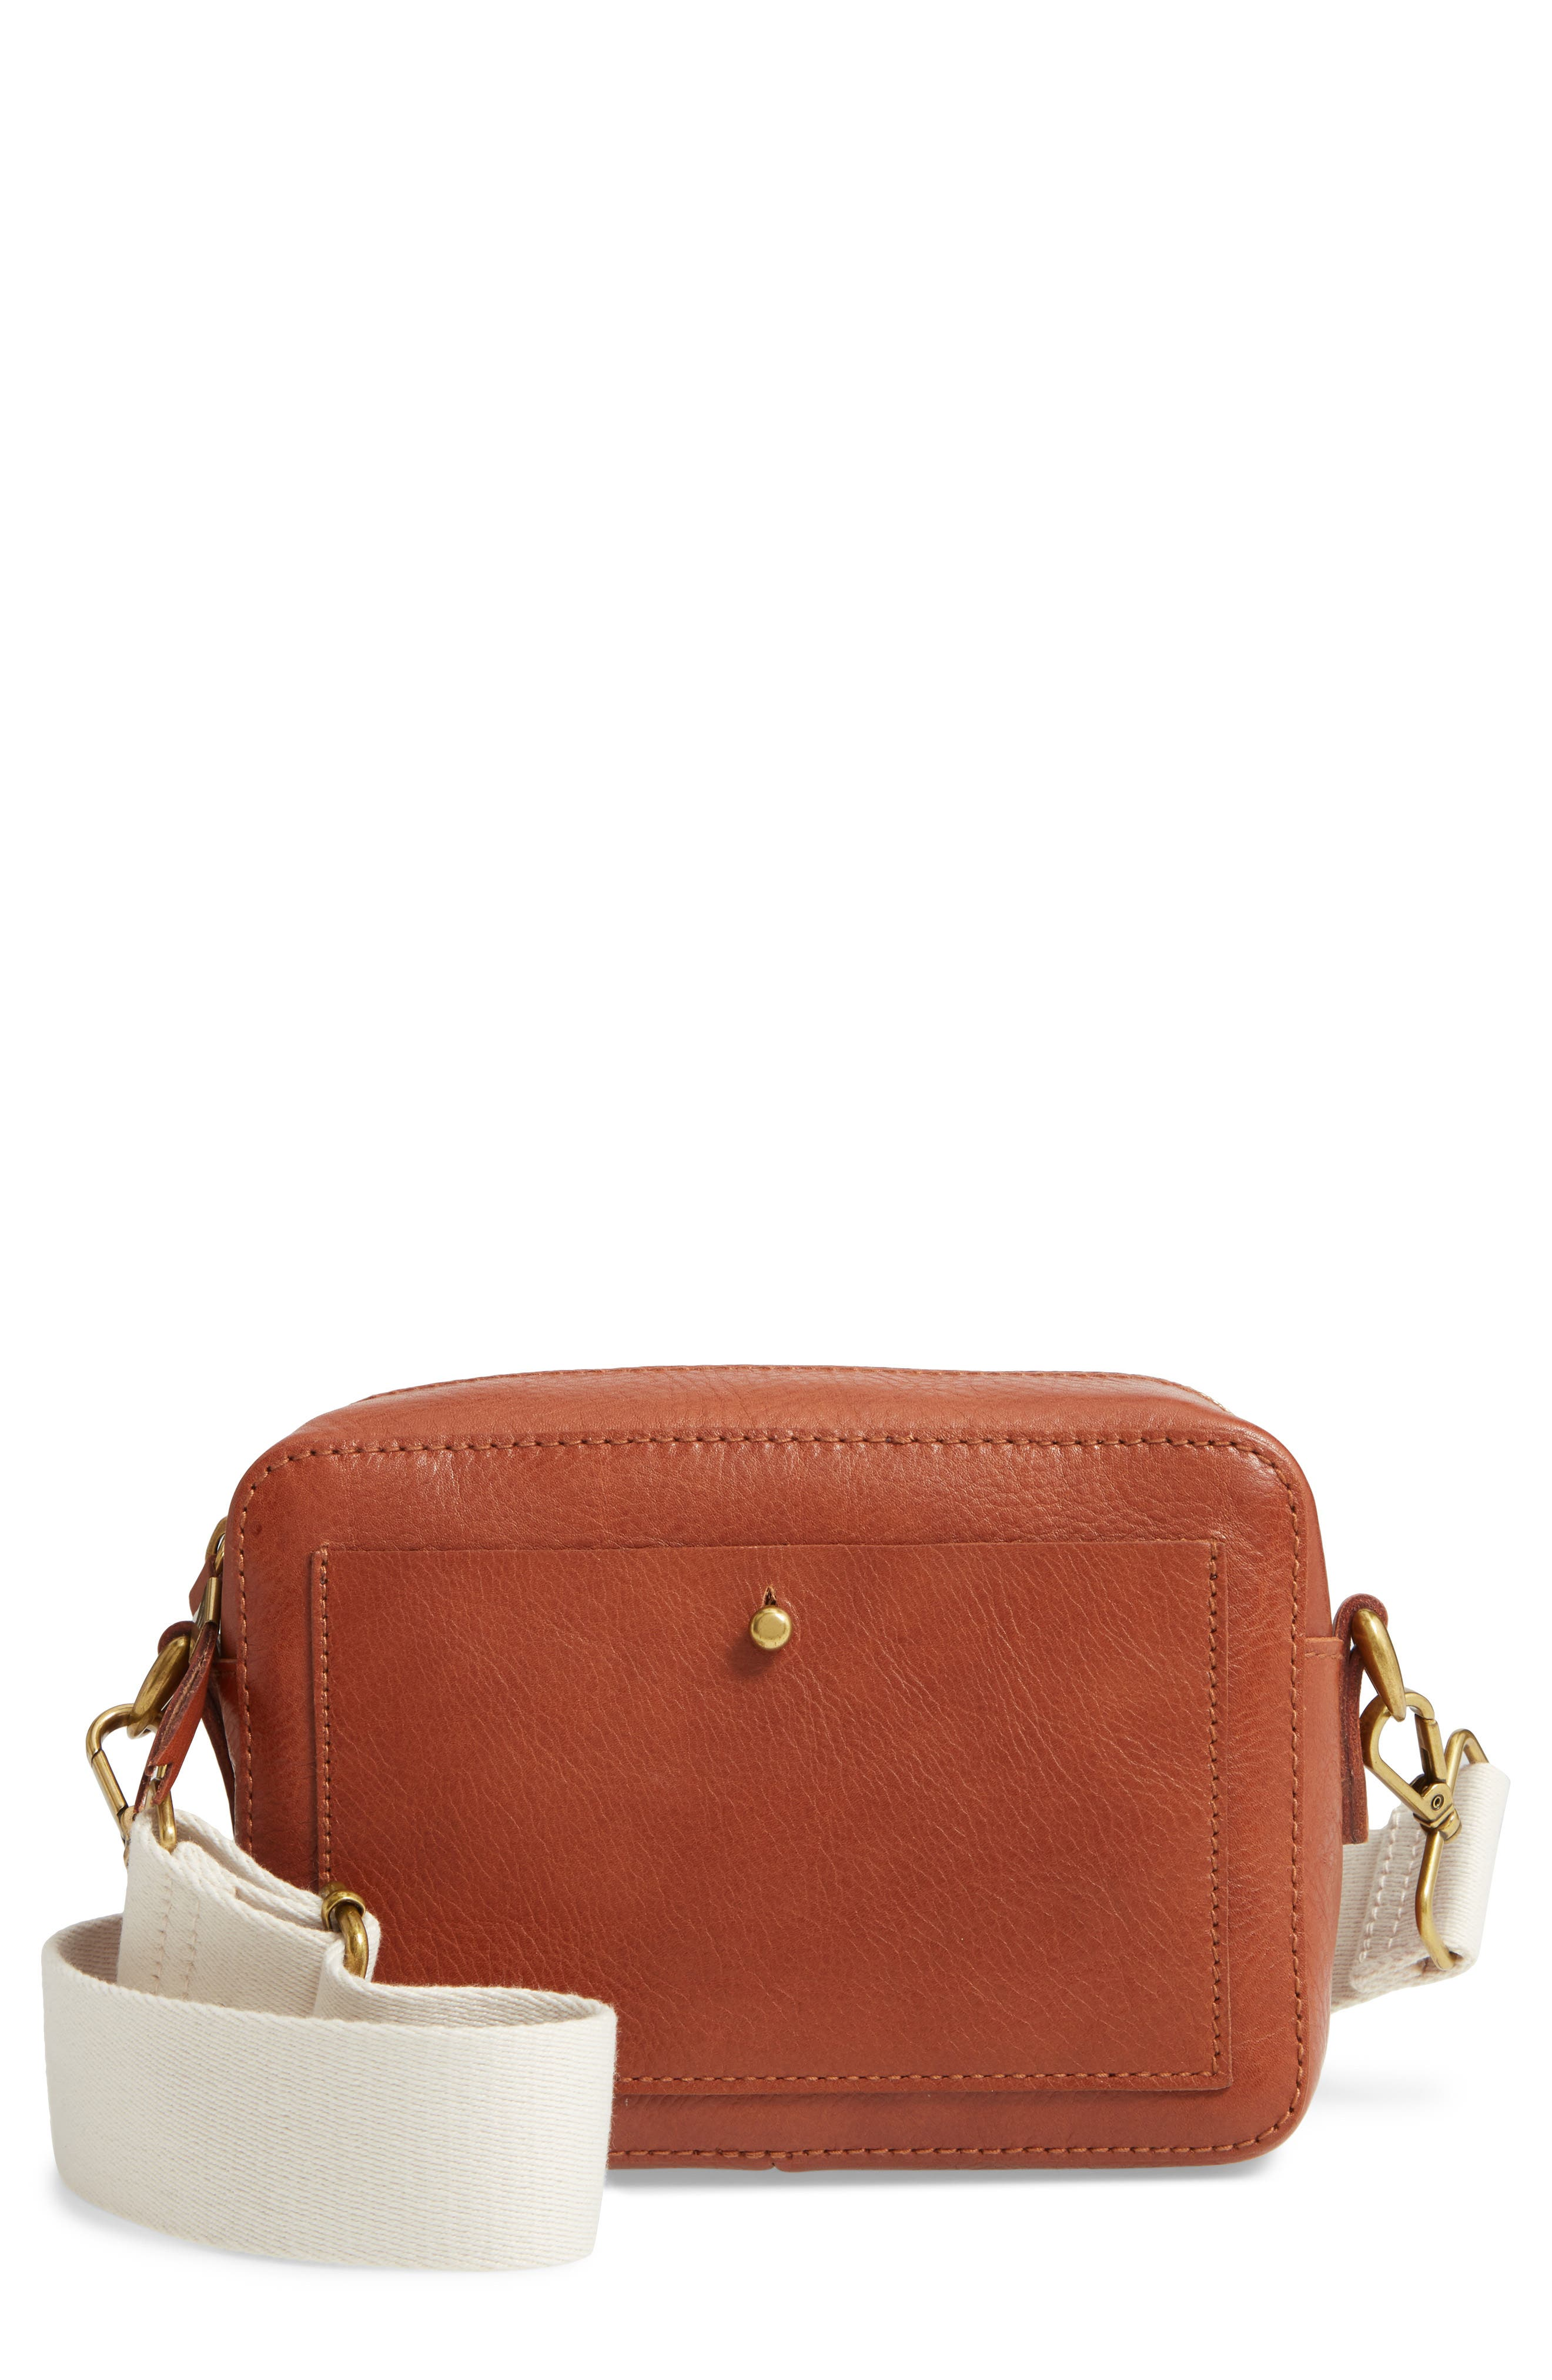 Part of Madewell\\\'s signature Transport collection, this structured shoulder bag is cool, convenient and customizable with two strap styles to choose from. Picture-perfectly sized to hold your keys, wallet, lip balm and smartphone-or, you know, a disposable camera. Style Name: Madewell The Transport Camera Bag. Style Number: 5885787. Available in stores.